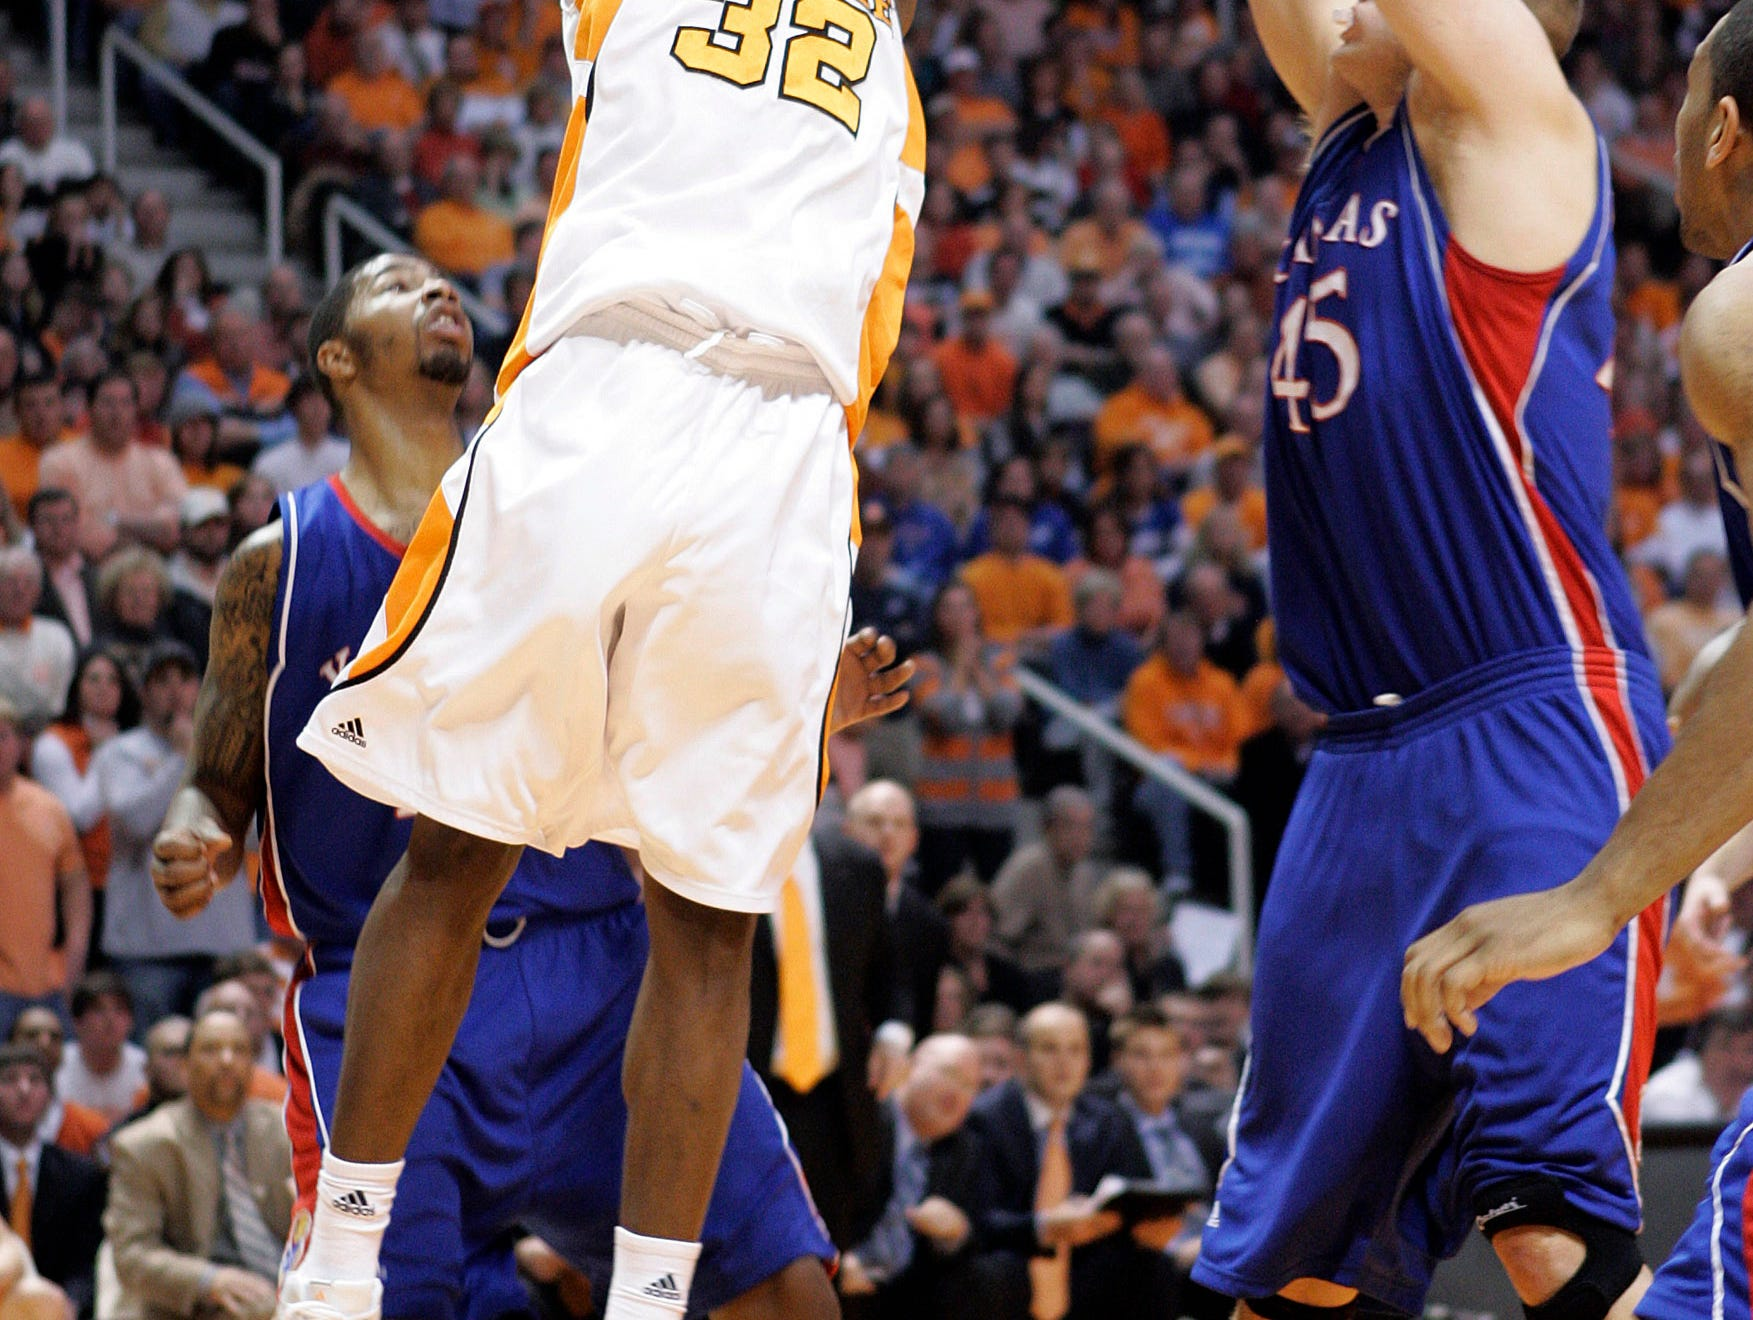 Tennessee's Scotty Hopson (32) drives against Kansas' Cole Aldrich (45) during the second half of an NCAA college basketball game Sunday, Jan. 10, 2010, in Knoxville, Tenn.